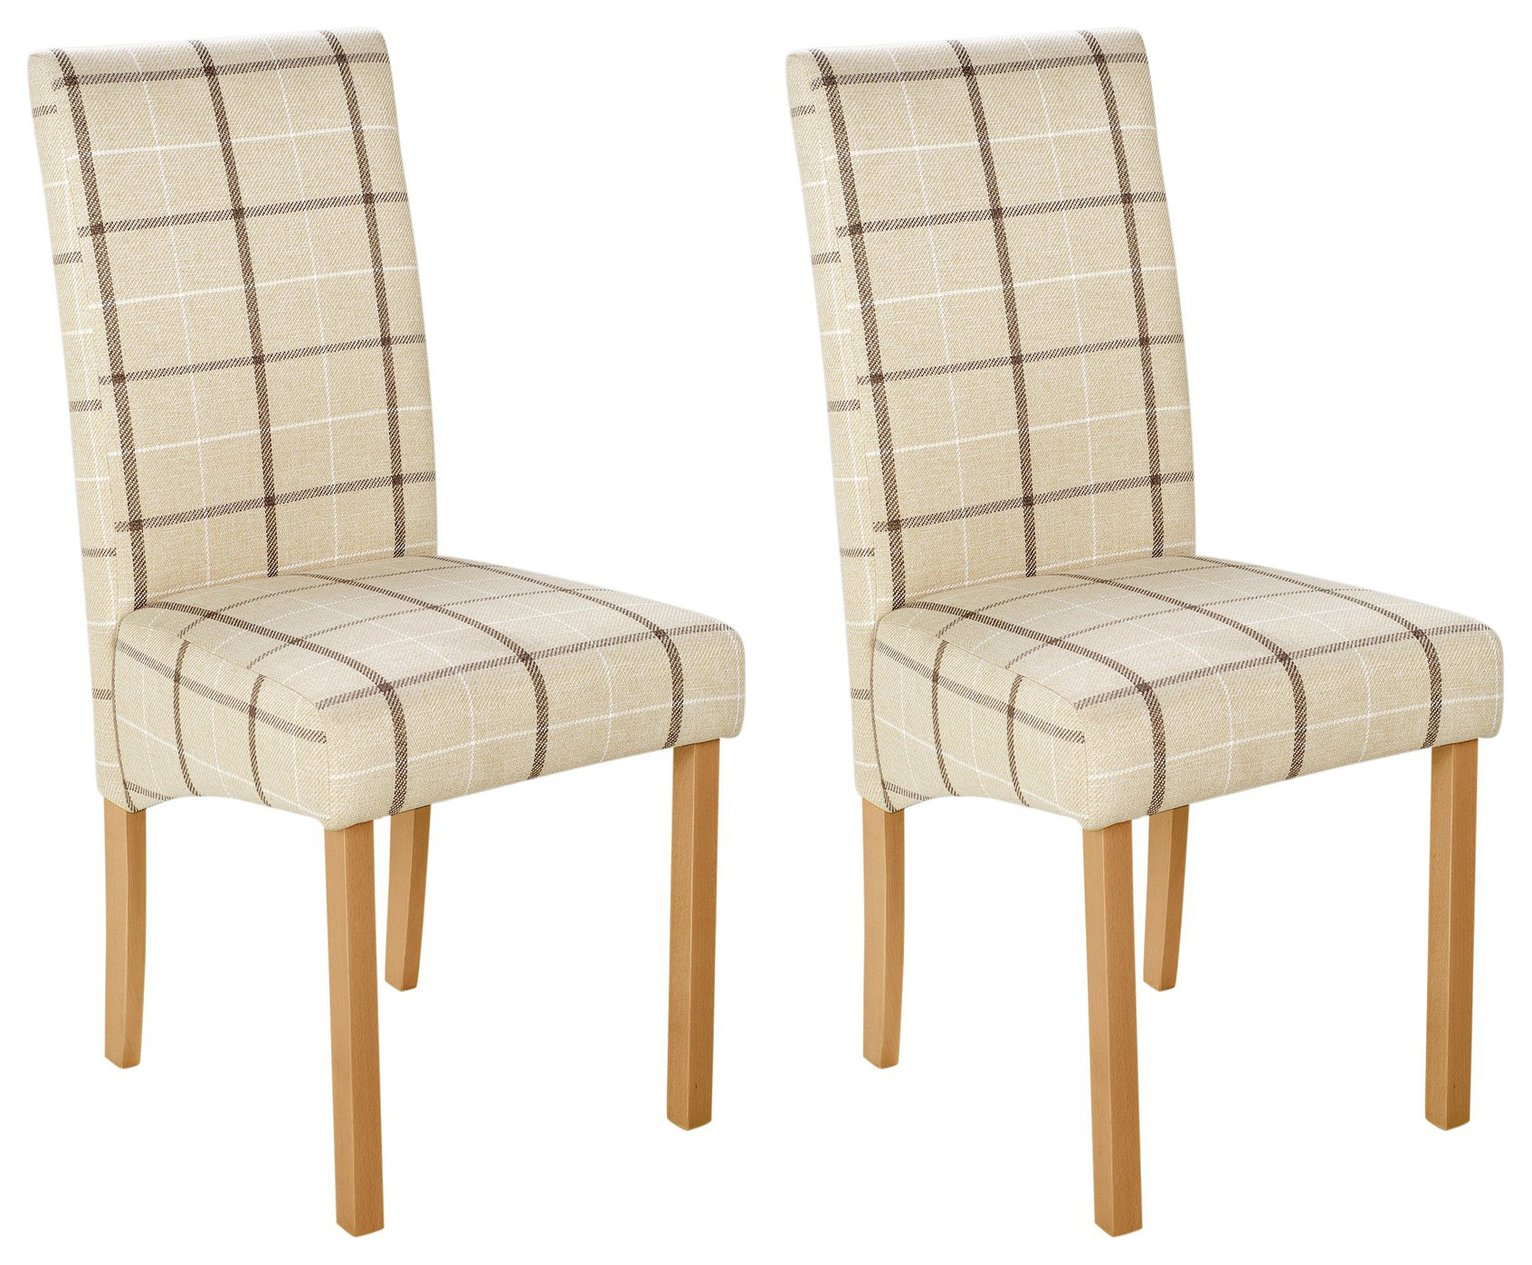 Argos Home Pair of Fabric Skirted Chairs review